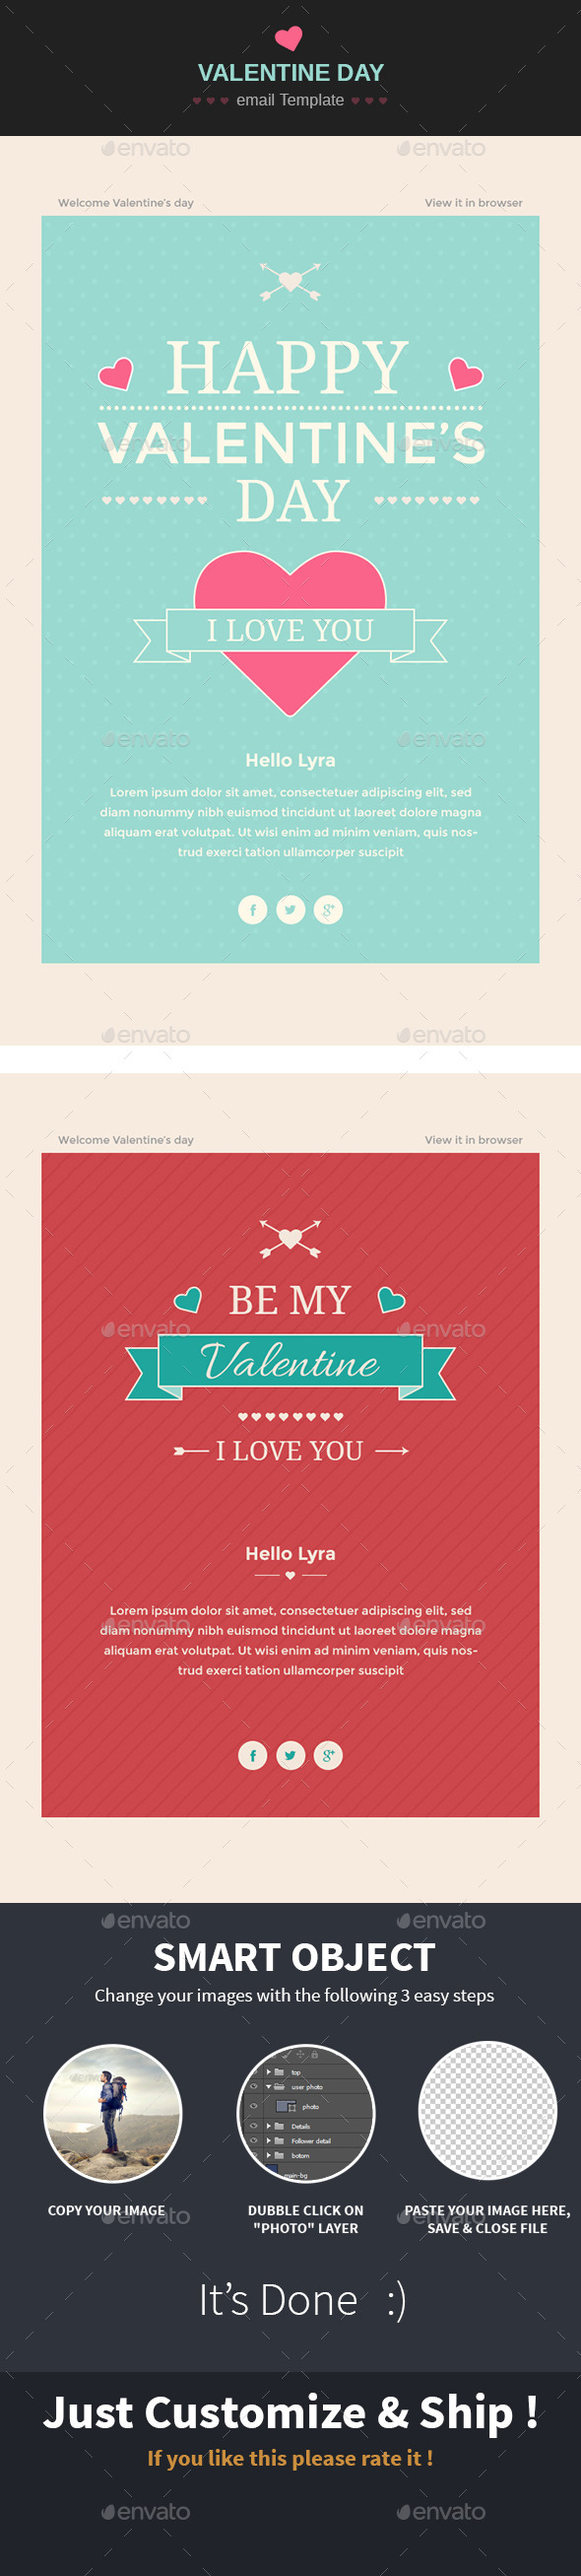 Happy Valentine wishes Email Template